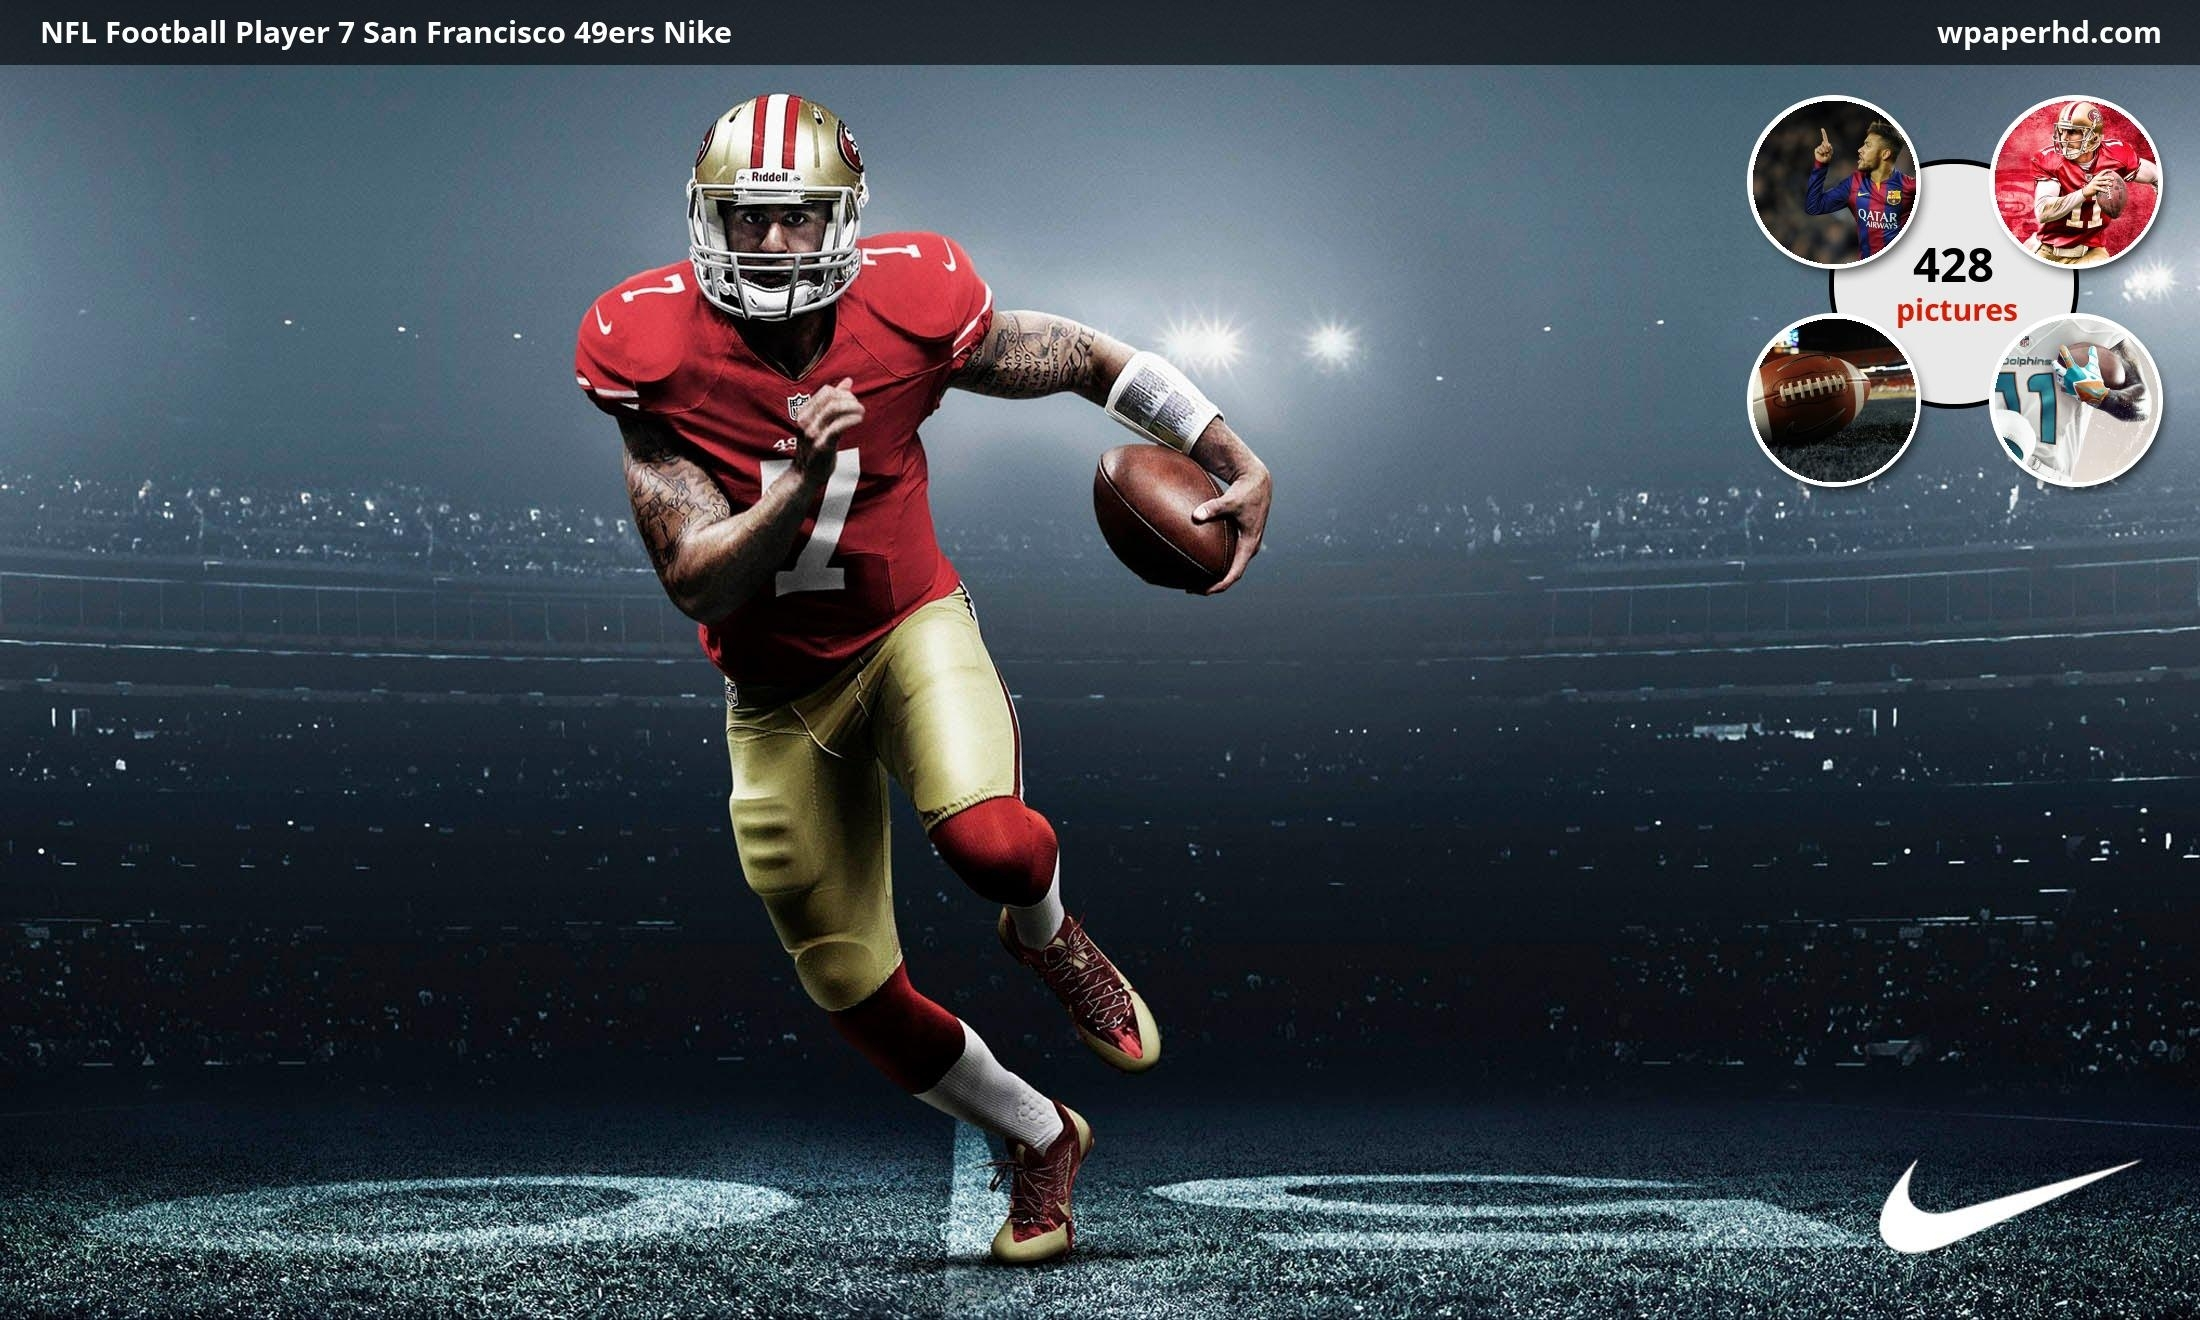 free wallpaper football players nfl players wallpapers 038 - top